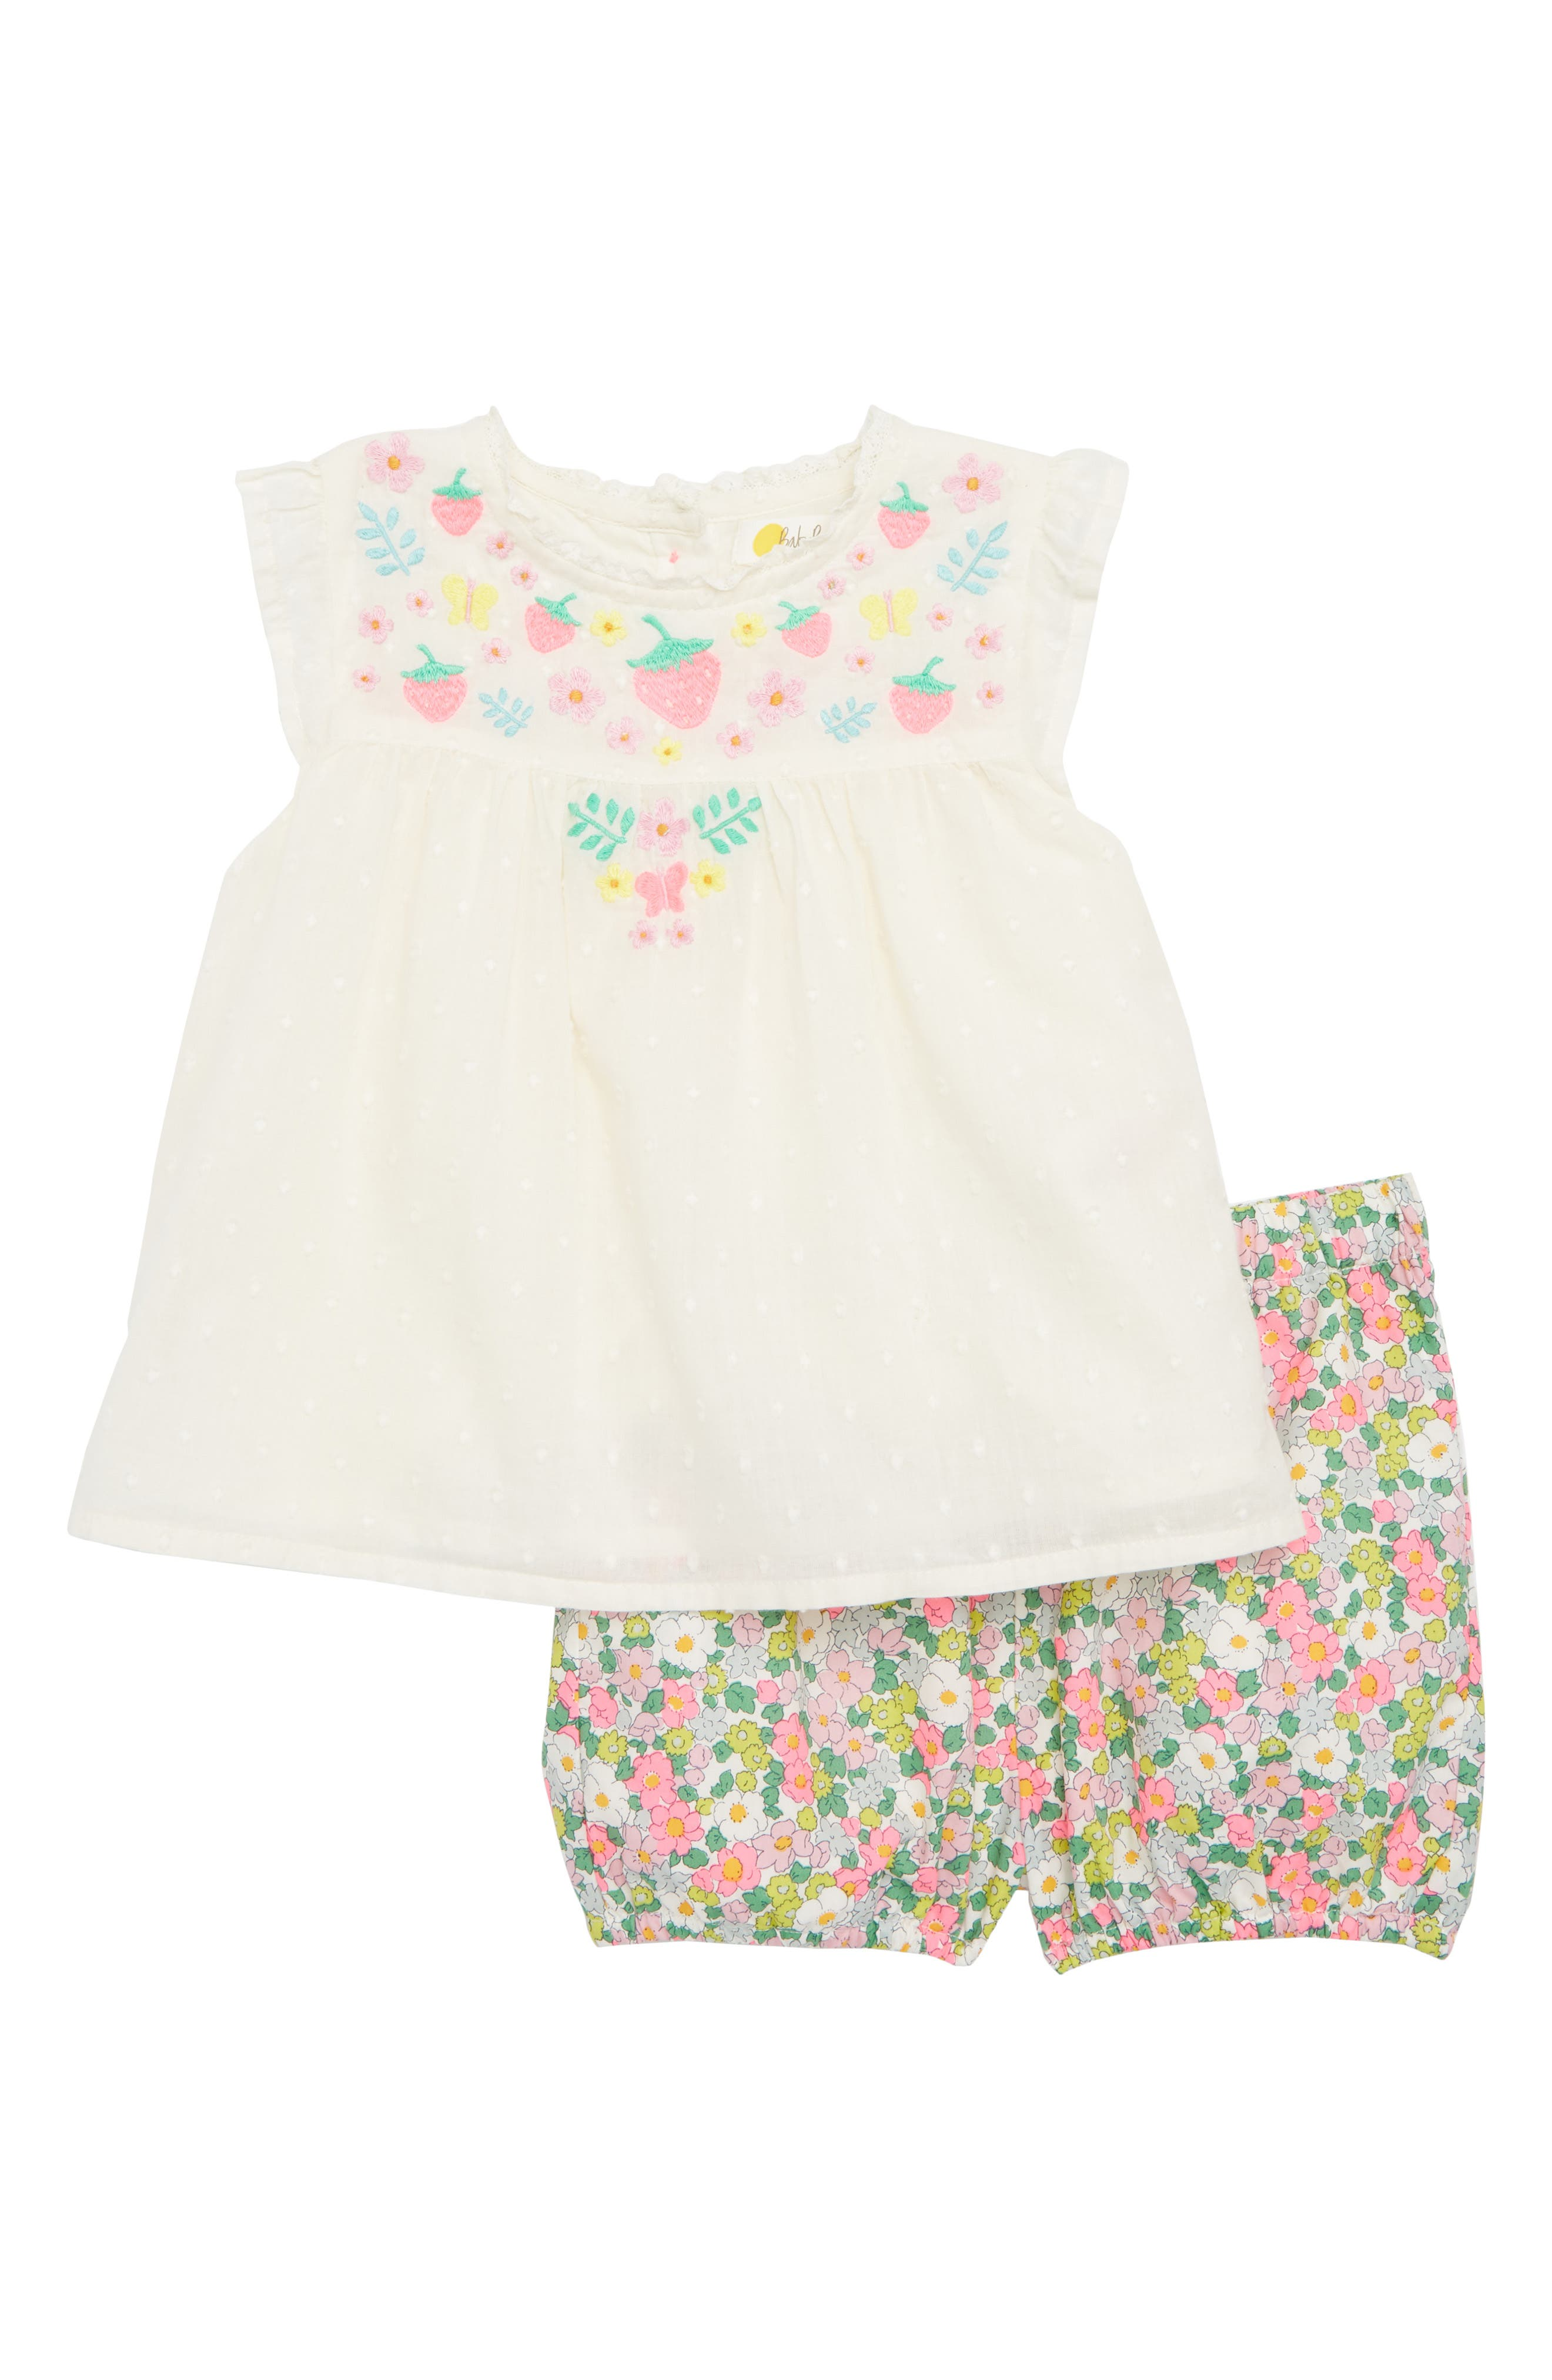 Sunny Days Top & Shorts Set,                         Main,                         color, Ivory Embroidery